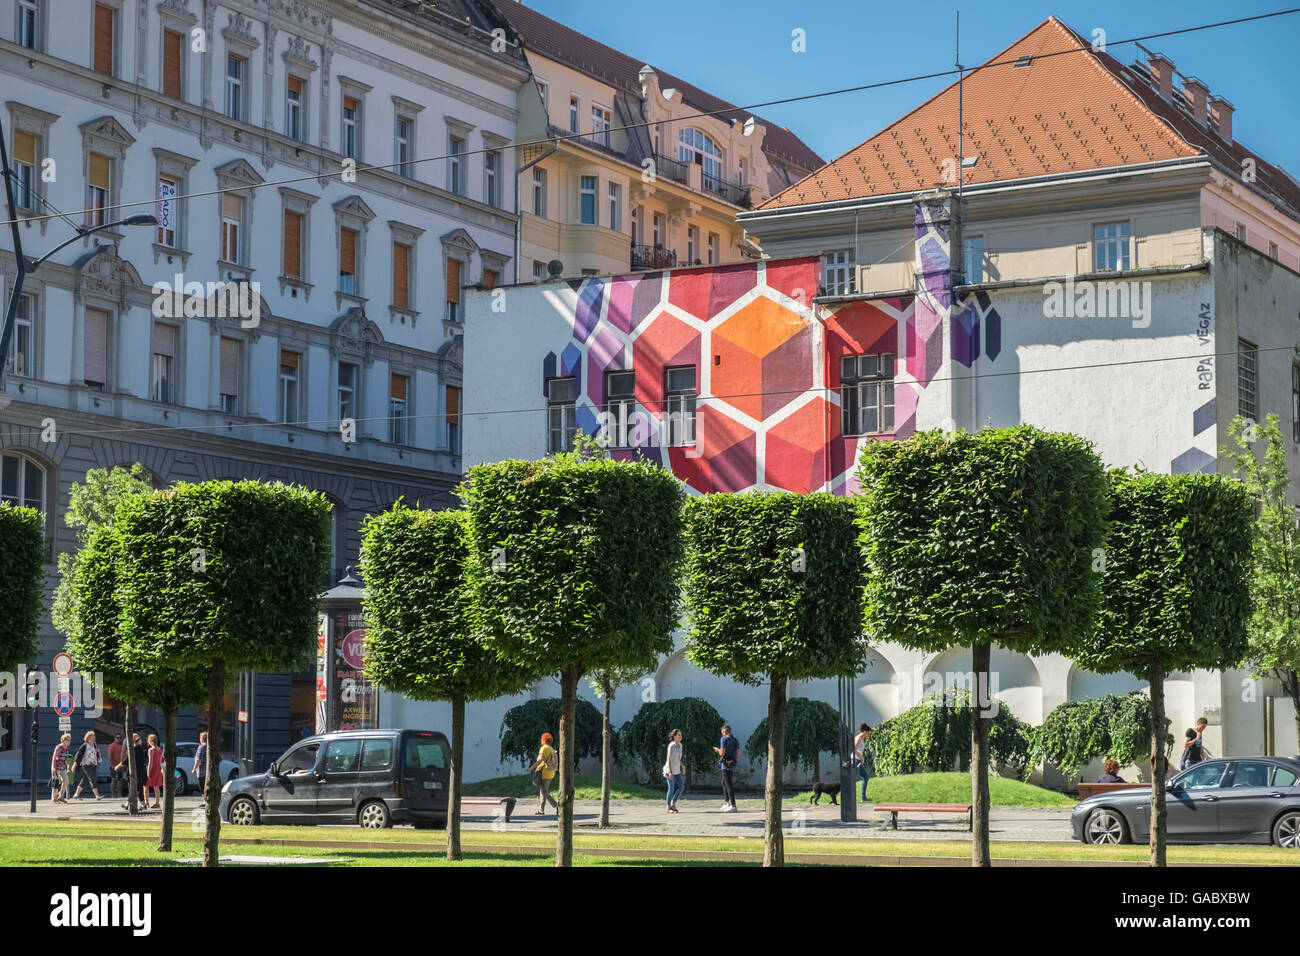 Street art, comprising building mural and clipped trees, on Karoly Krt, Budapest, Hungary - Stock Image